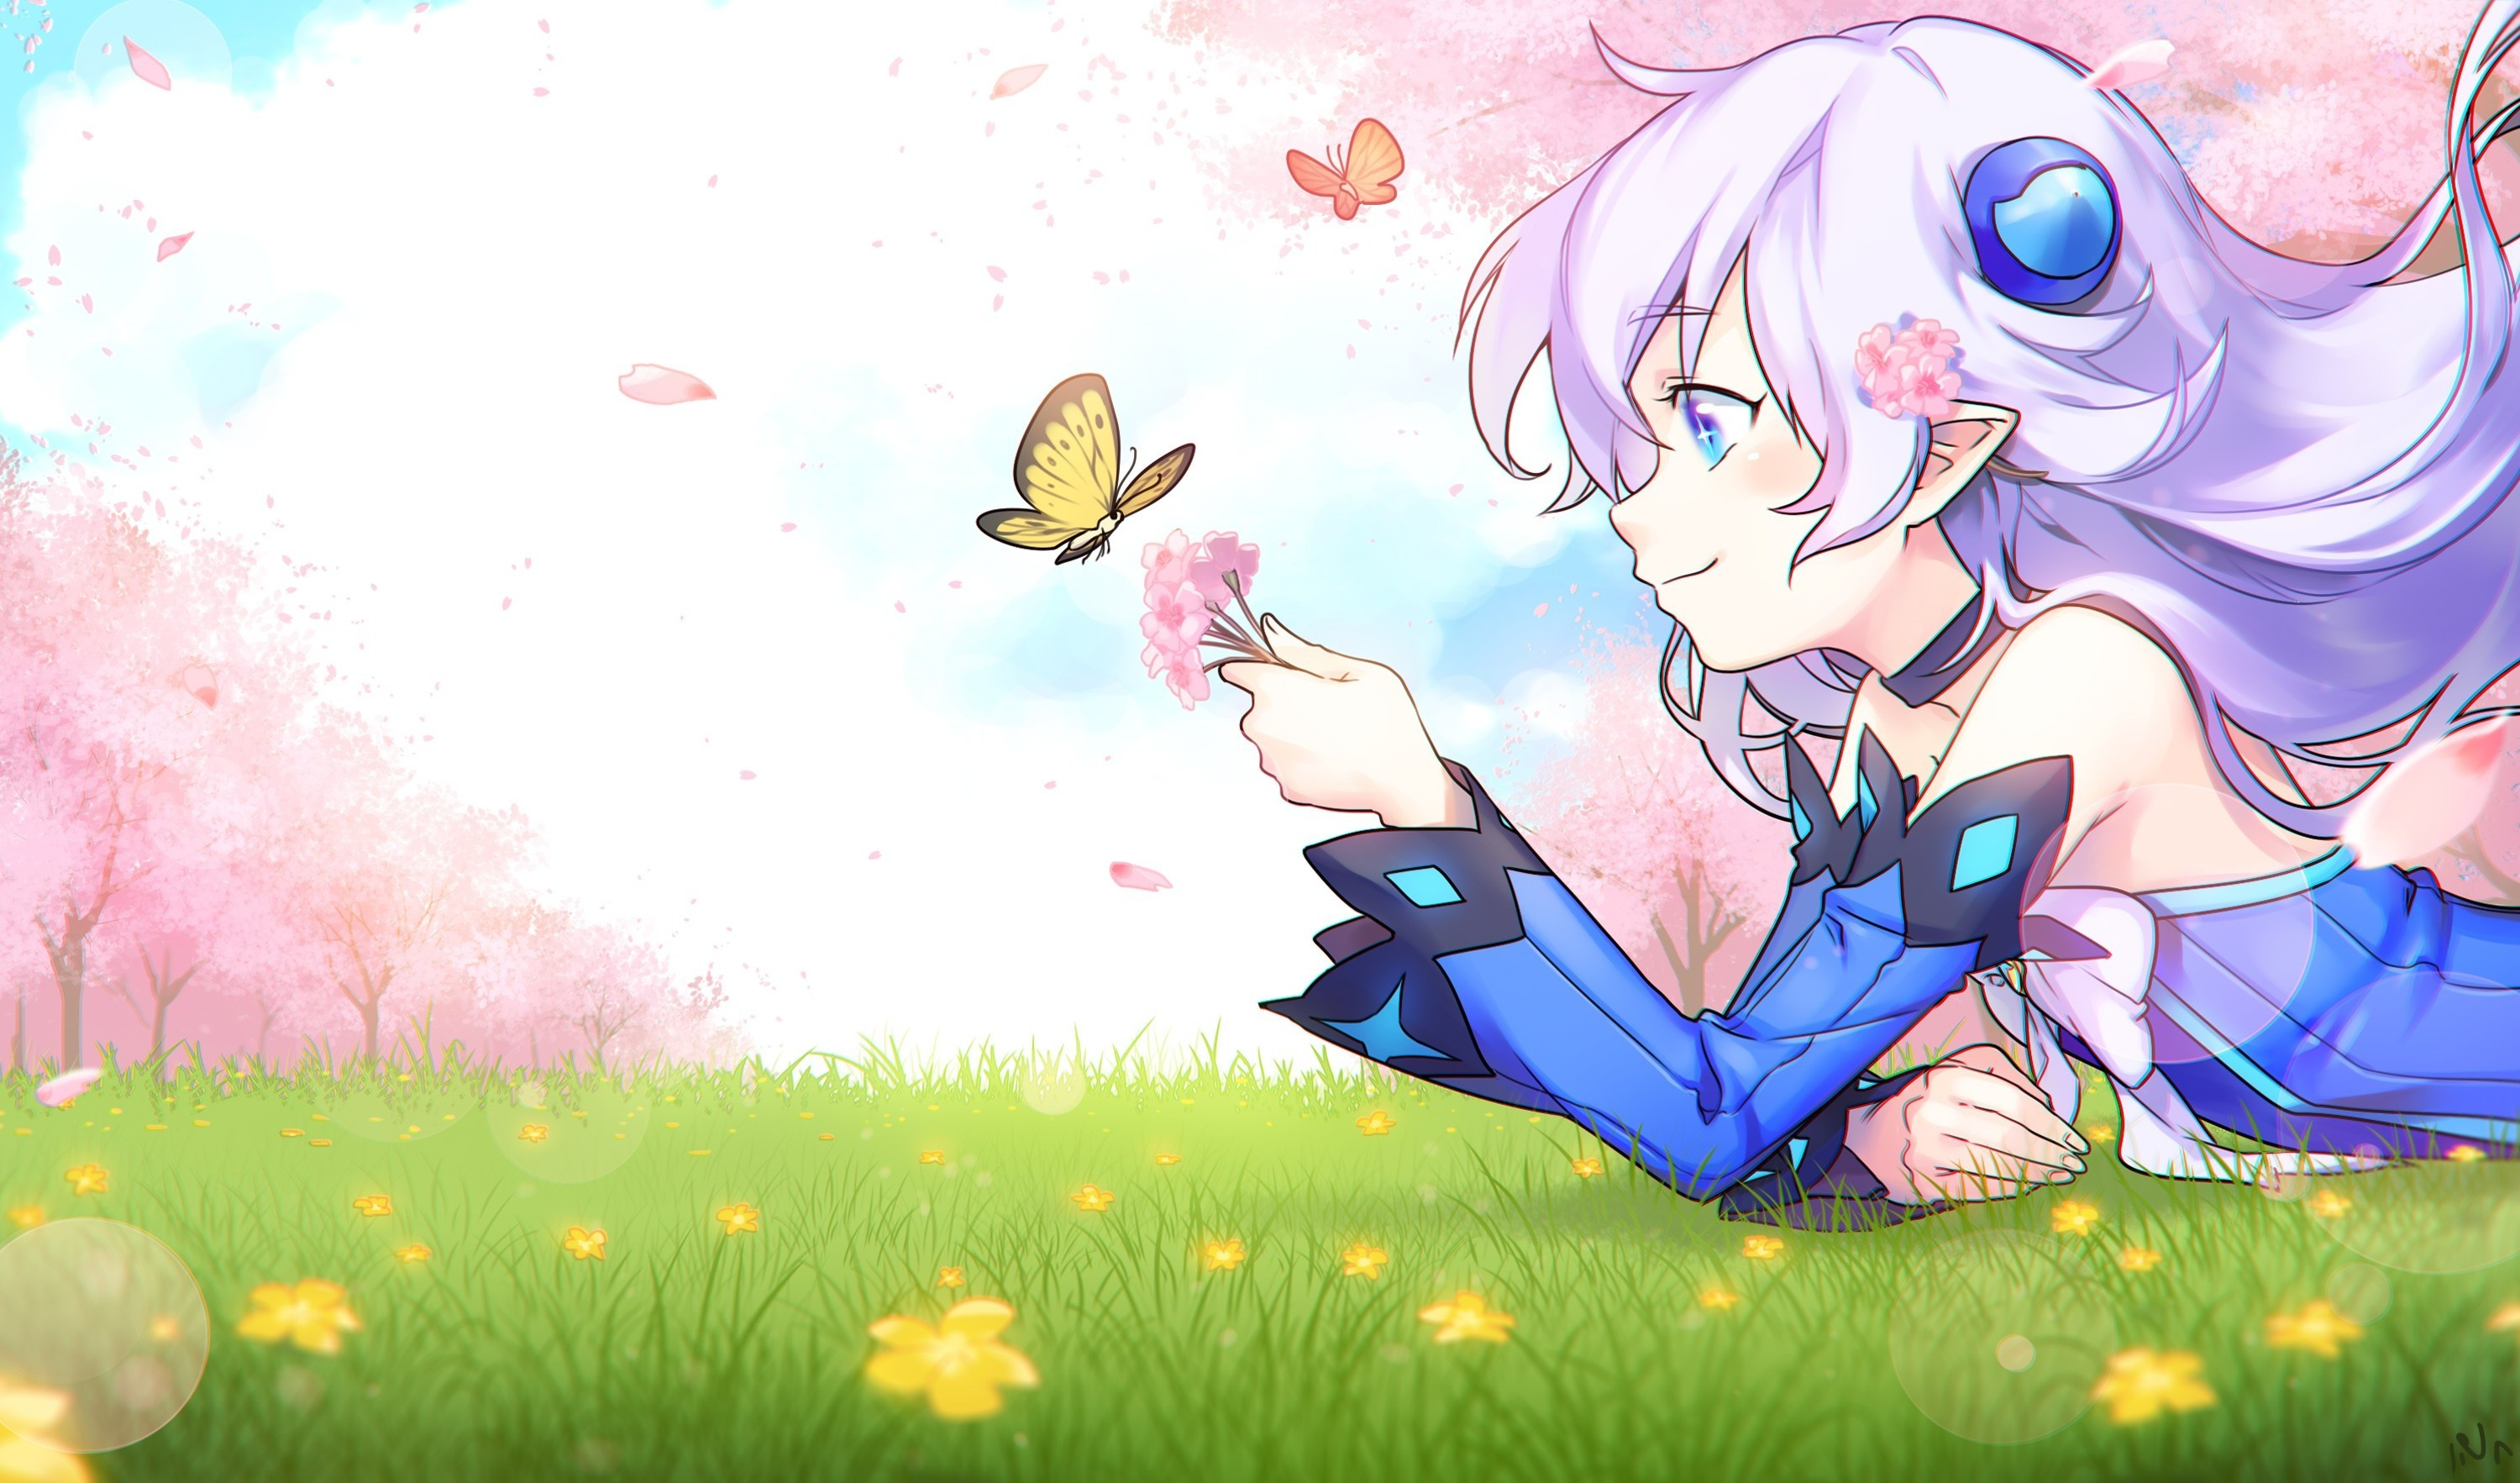 3000x1765 anime Girls, Lu (Elsword), Elsword, Aqua Eyes, Butterfly, Cherry Blossom,  White Hair, Pointed Ears, Grass Wallpapers HD / Desktop and Mobile  Backgrounds